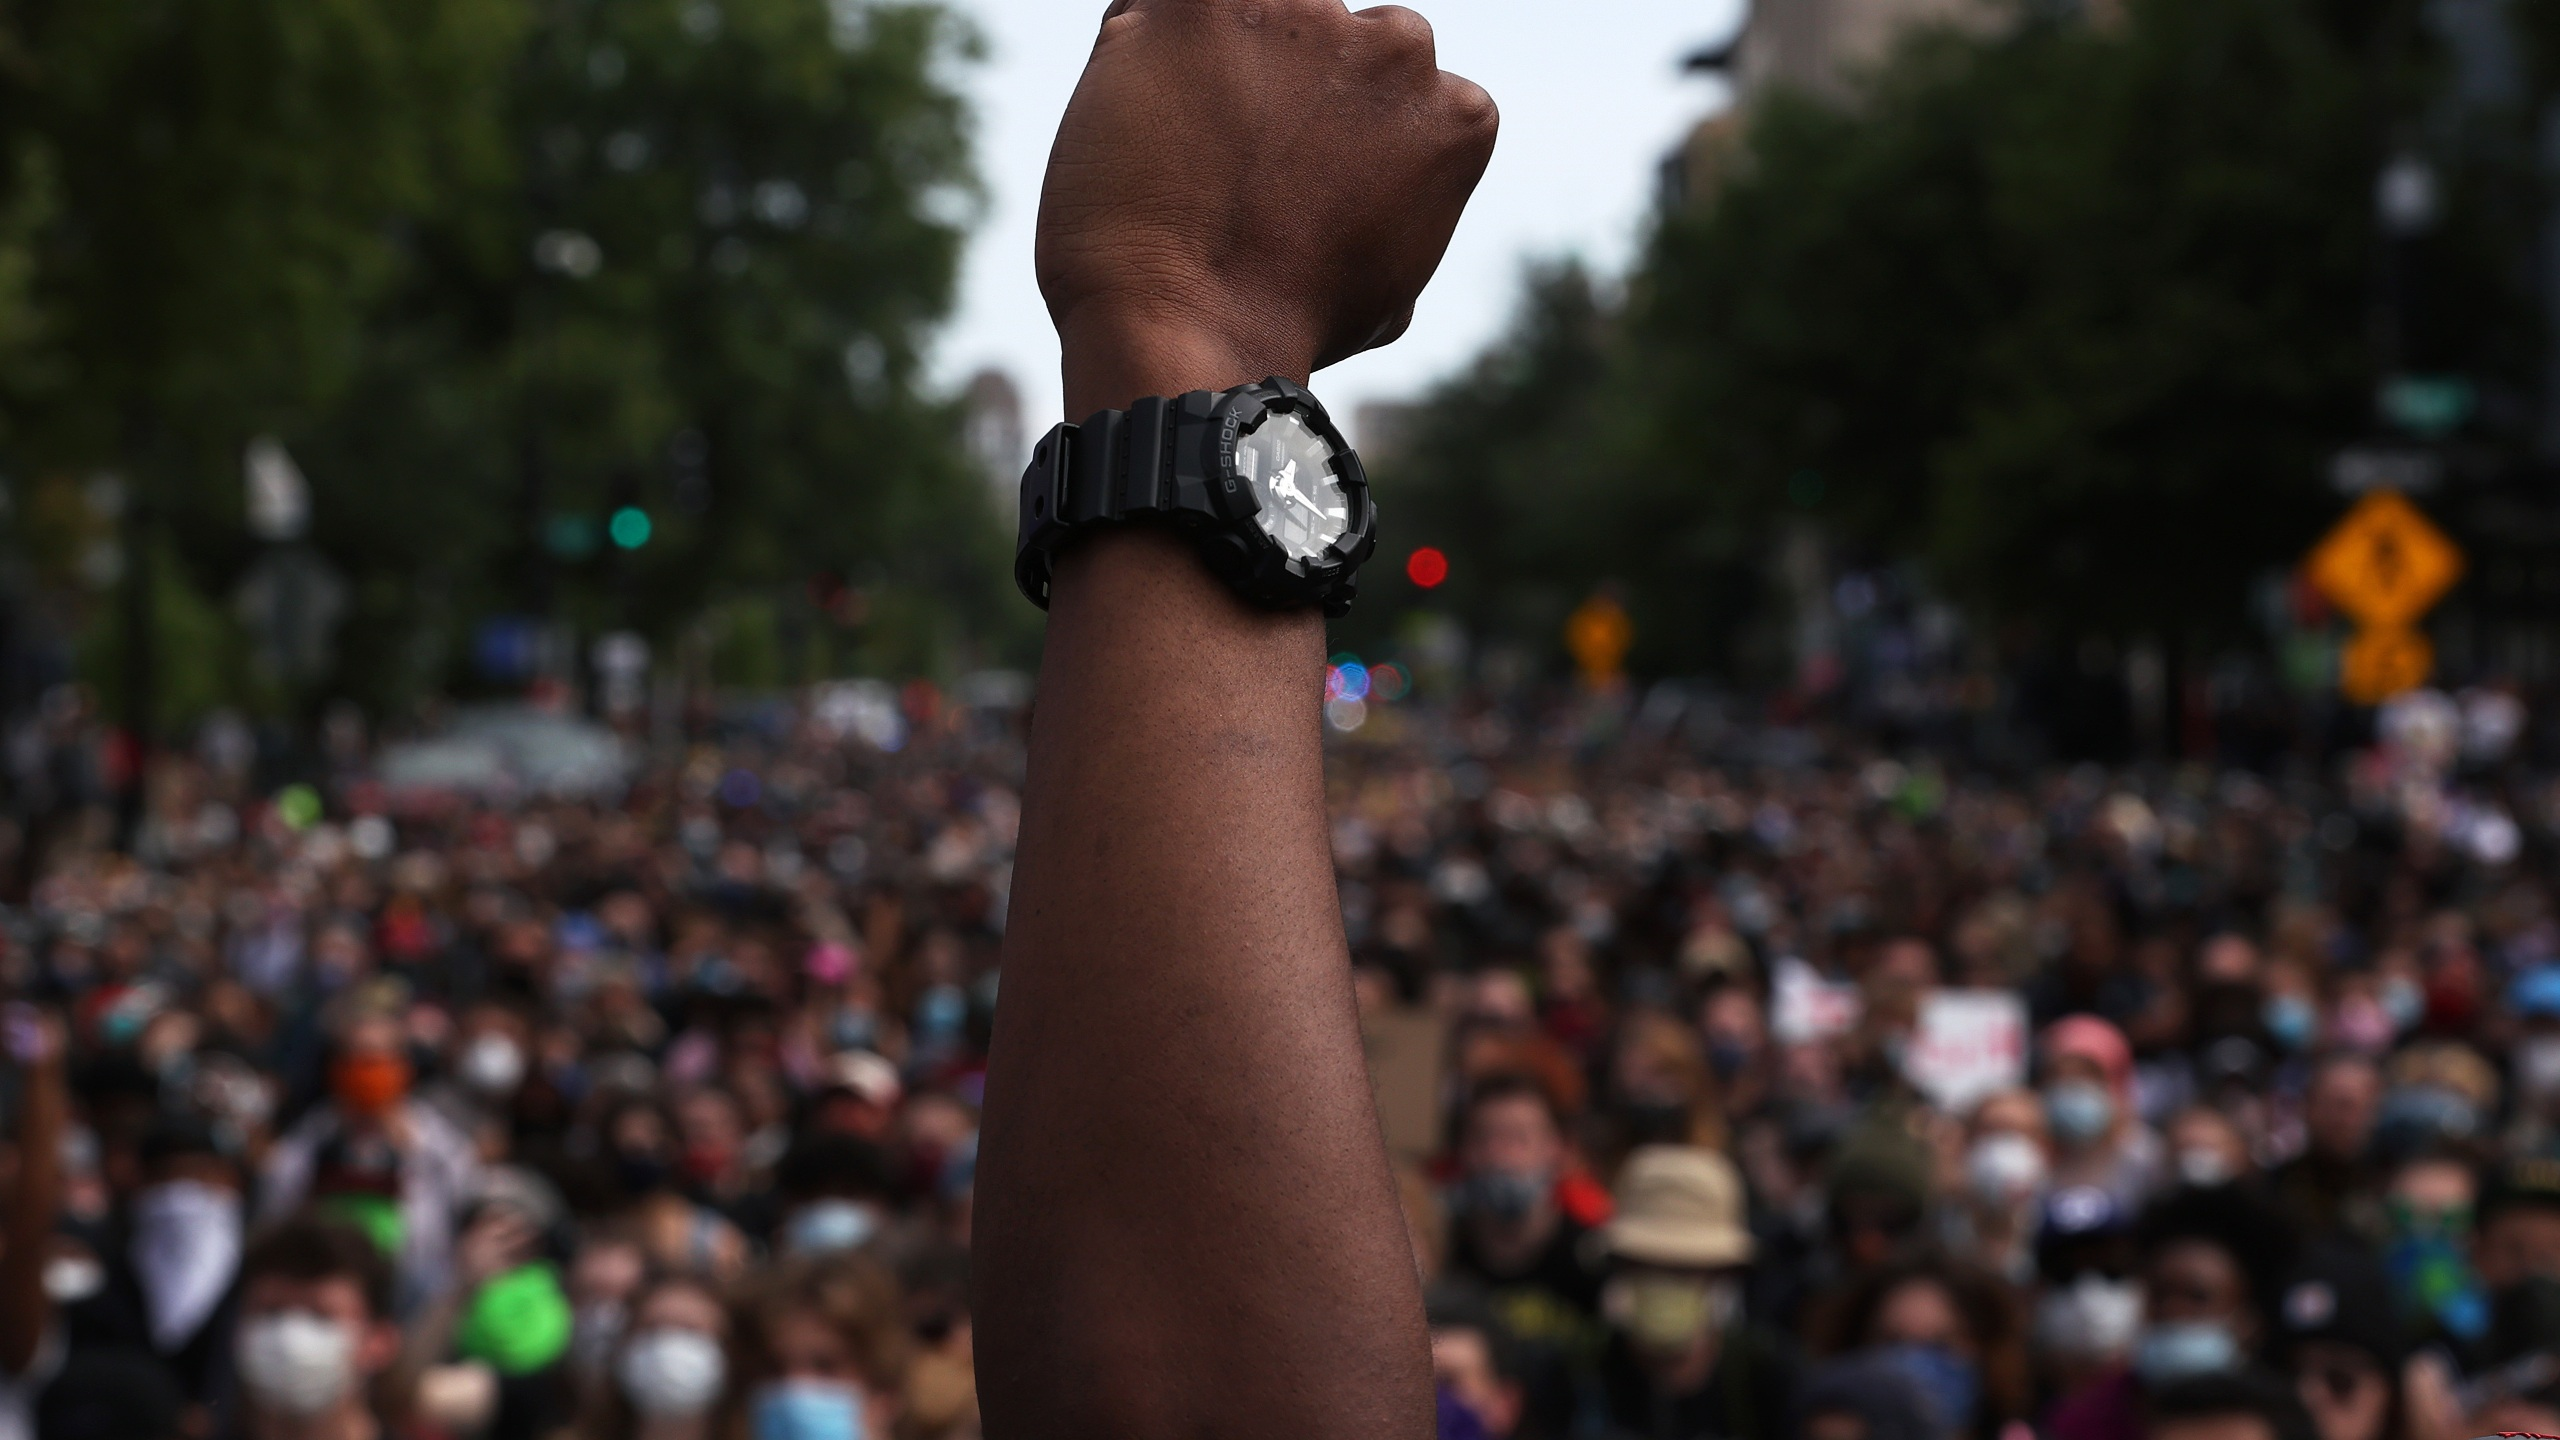 A man holds up his fist while hundreds of demonstrators march to protest against police brutality and the death of George Floyd, on June 2, 2020 in Washington, D.C. (Win McNamee/Getty Images)